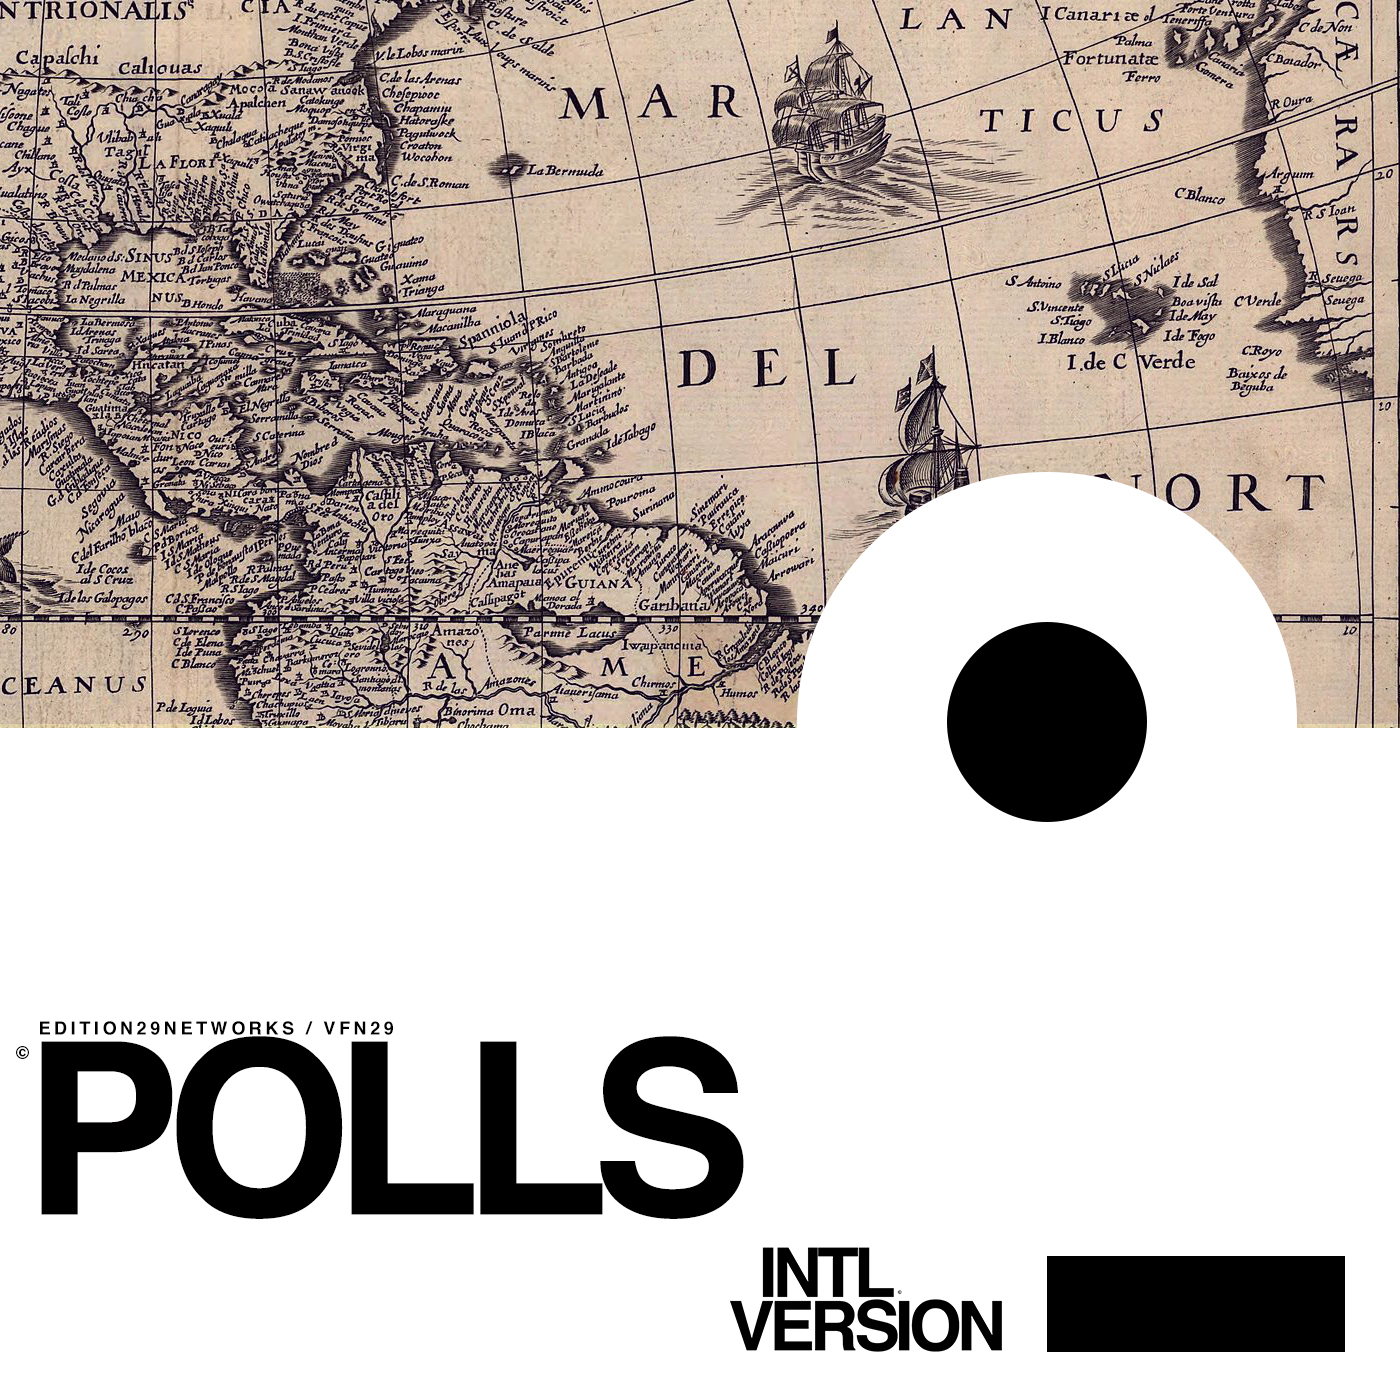 POLLS / INTL VERSION